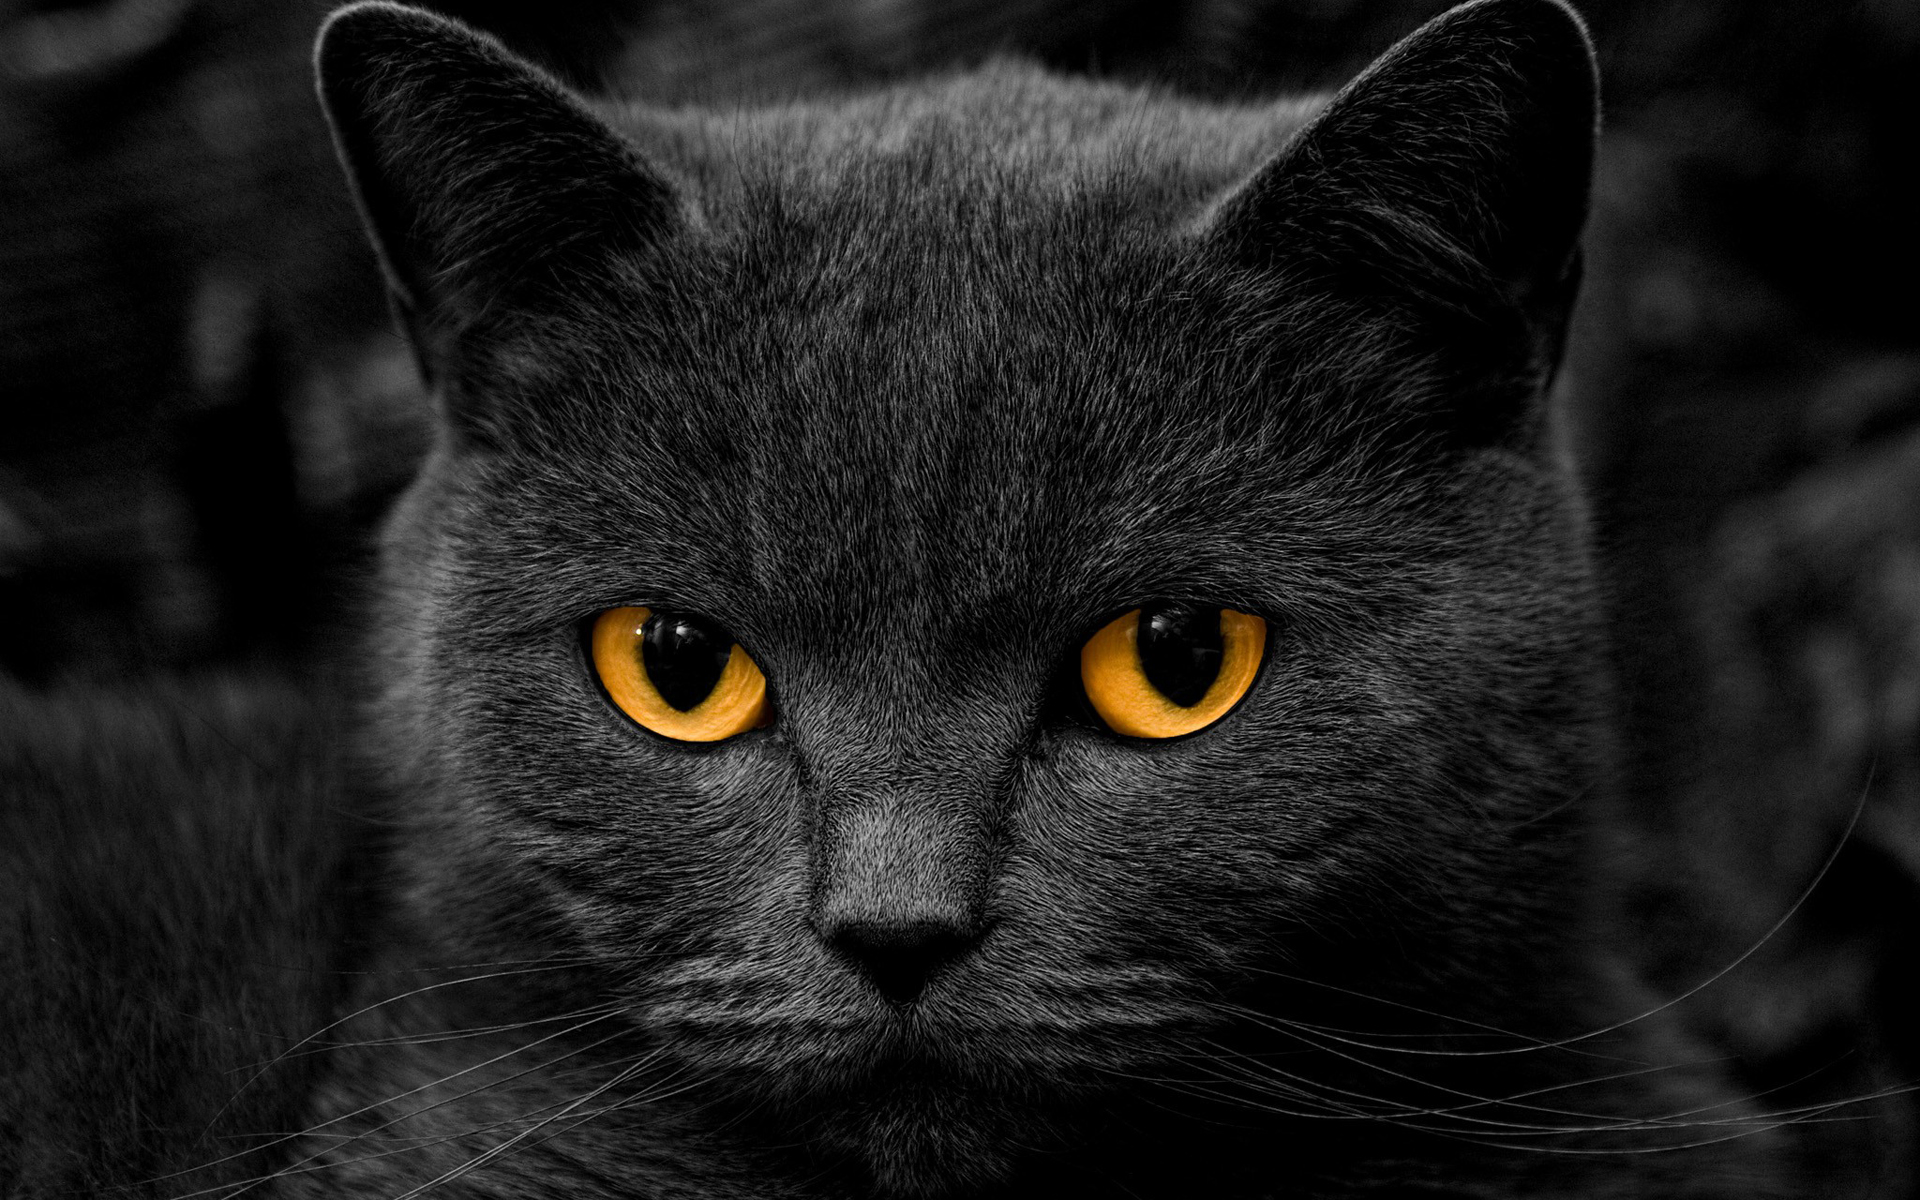 Awesome Black Cat Wallpaper 24147 1920x1200 px HDWallSourcecom